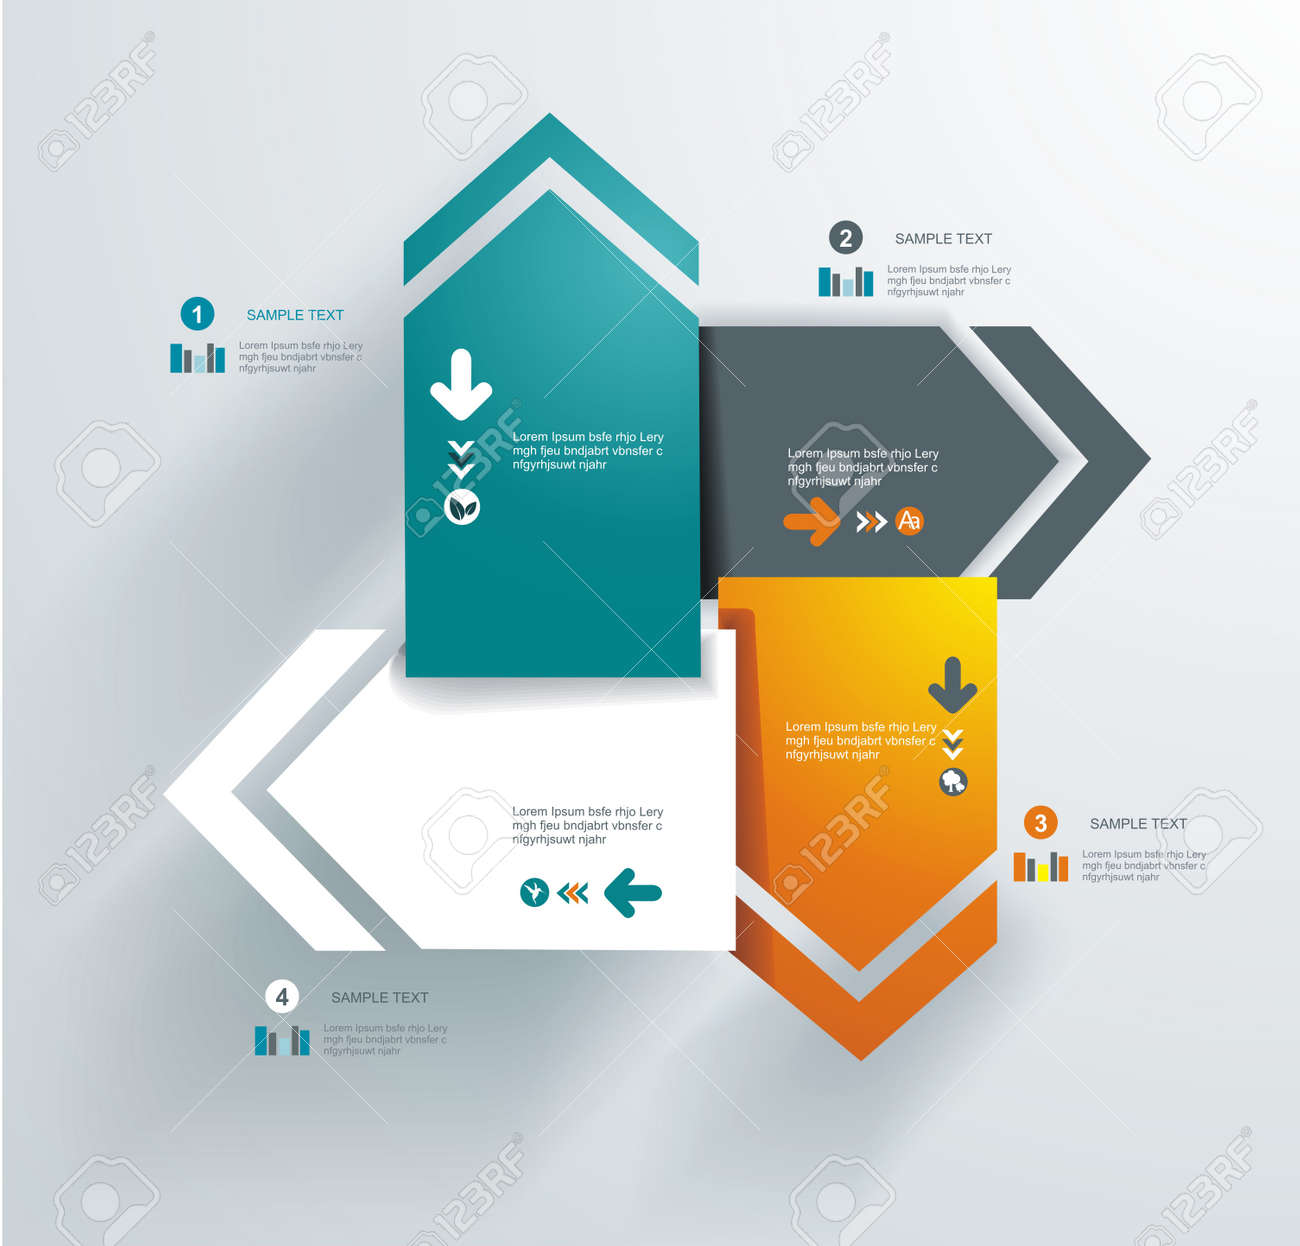 Abstract distortion from arrow shape background - seamless  Can be used for graphic or website layout vector Stock Vector - 18818690